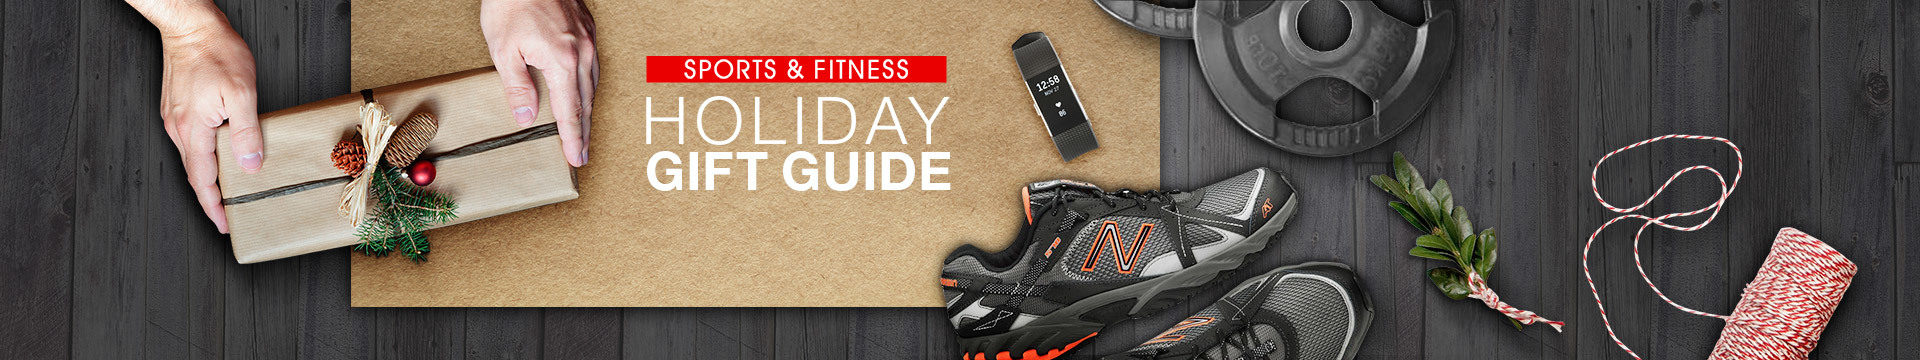 b0fcbbe0c9 Holiday Gift Guide